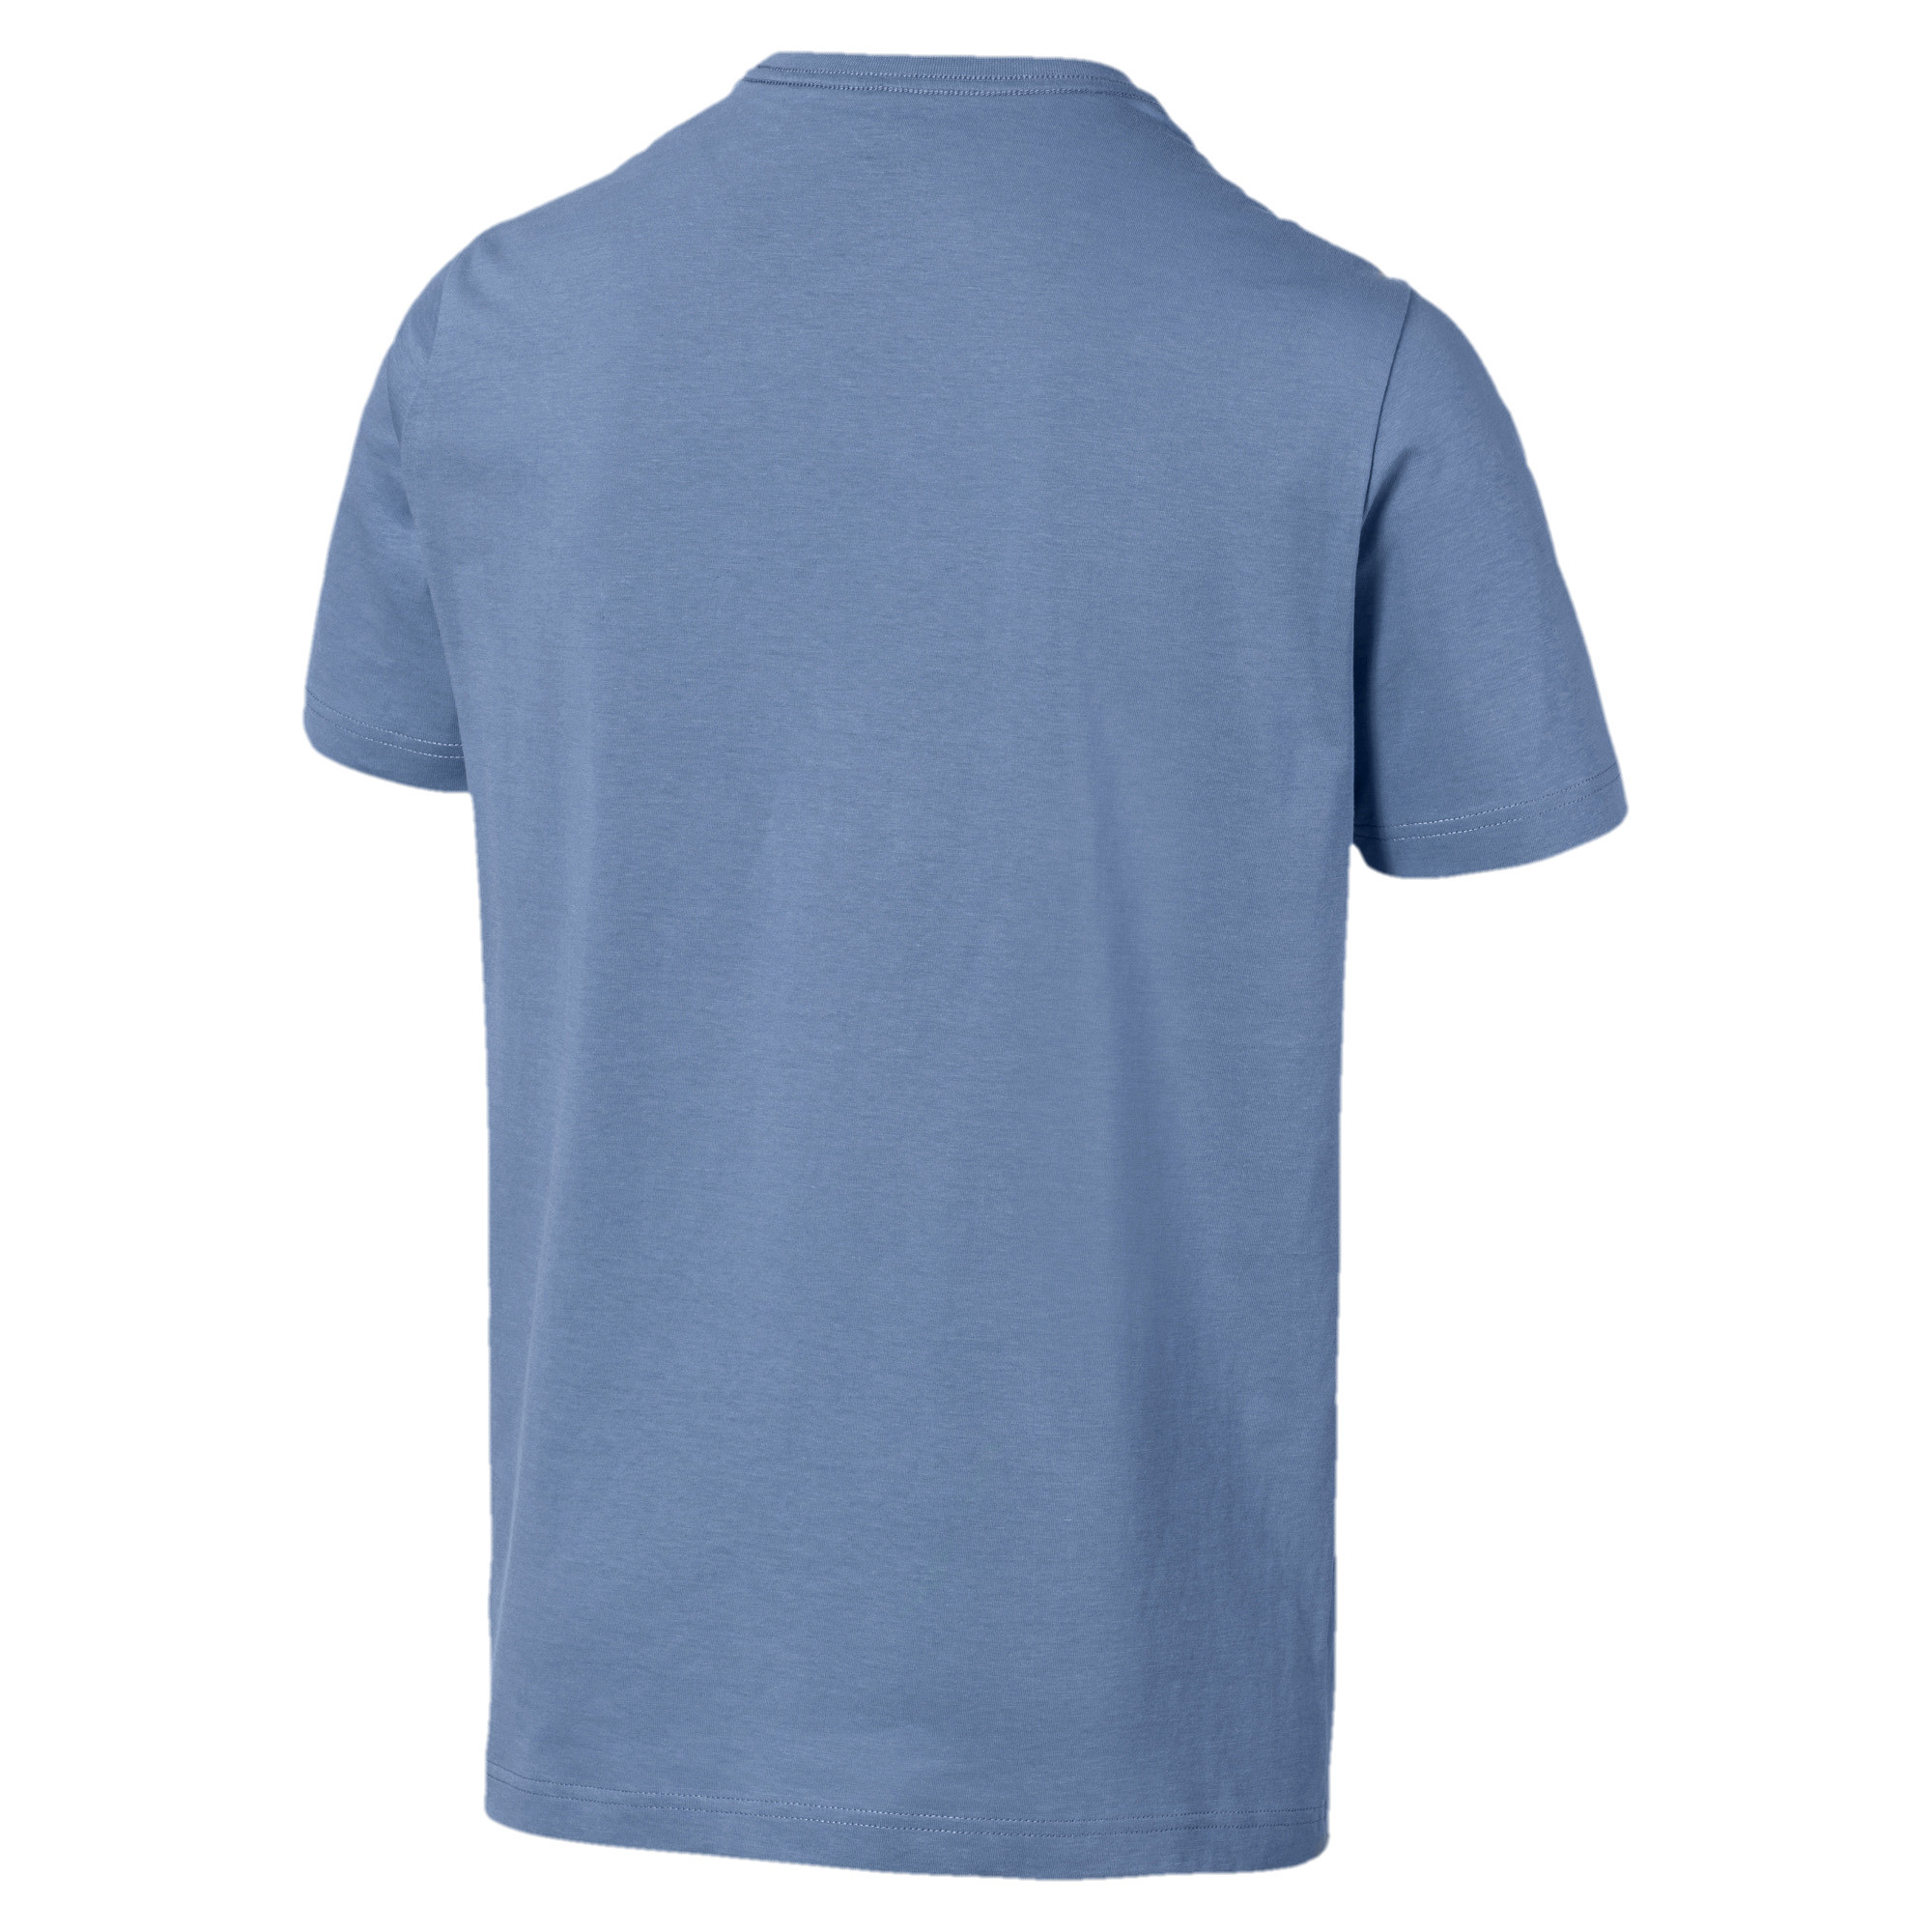 PUMA-Essentials-Men-039-s-Logo-Tee-Men-Tee-Basics thumbnail 8